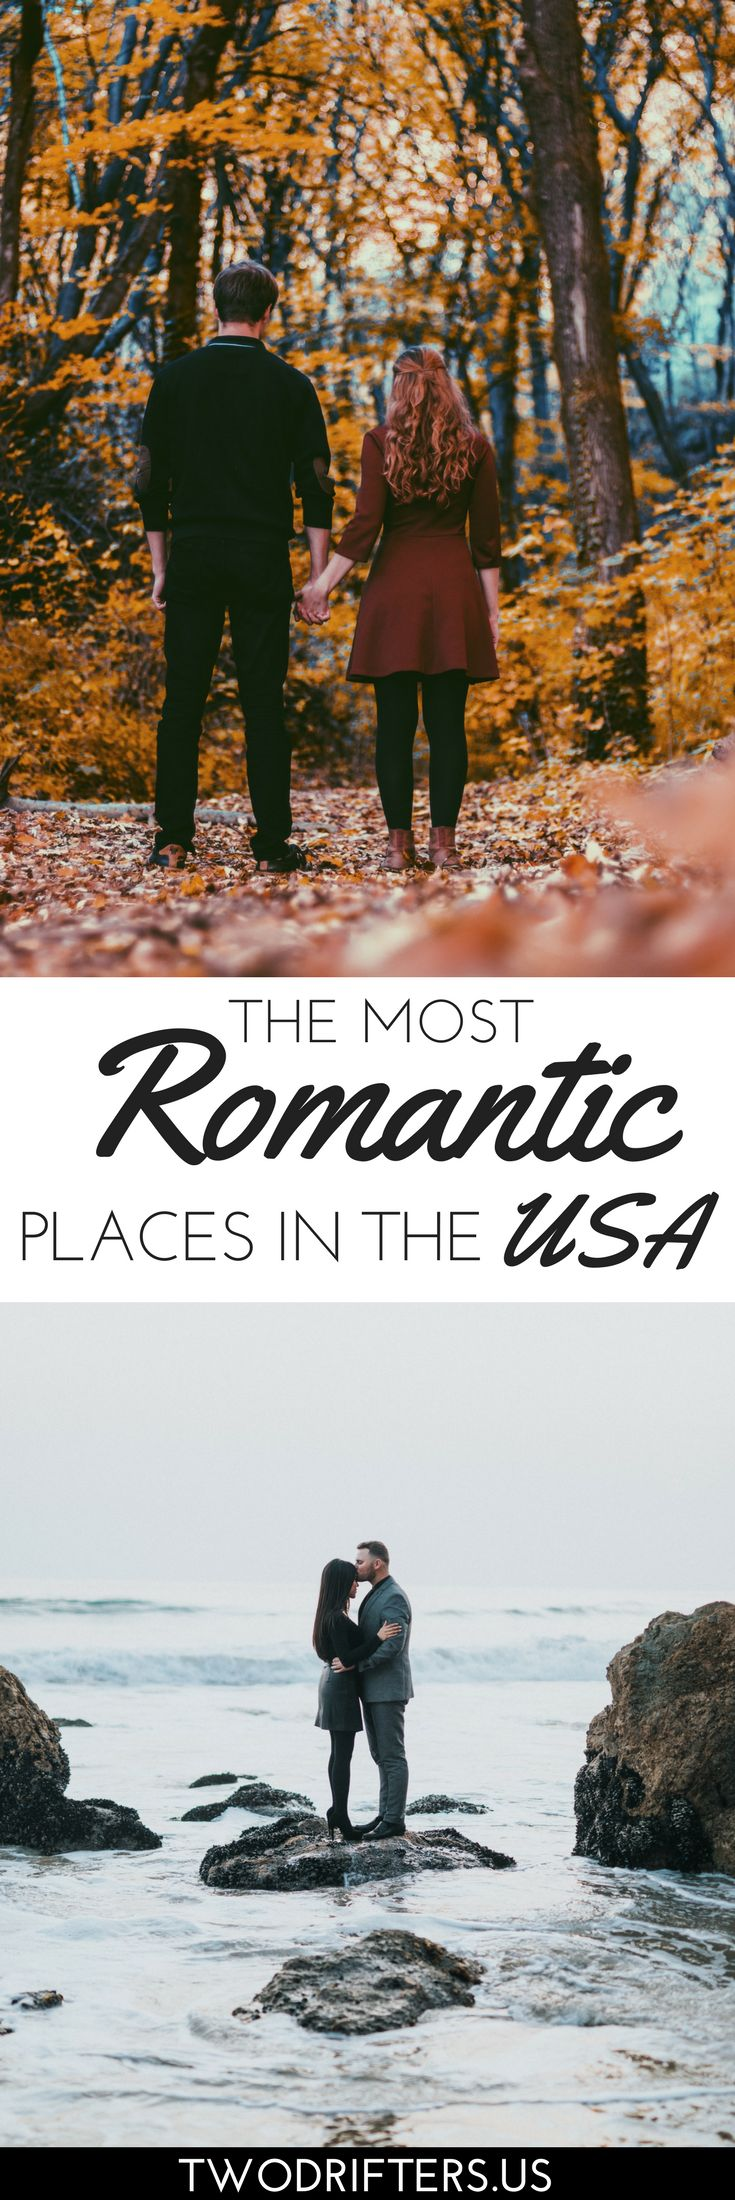 Looking for romantic destinations in the USA? Here are more than 25 places for a great couples getaway! #Couples #Romance #Romantic #Travel #USATravel #USA #valentinesday #traveltuesday #America